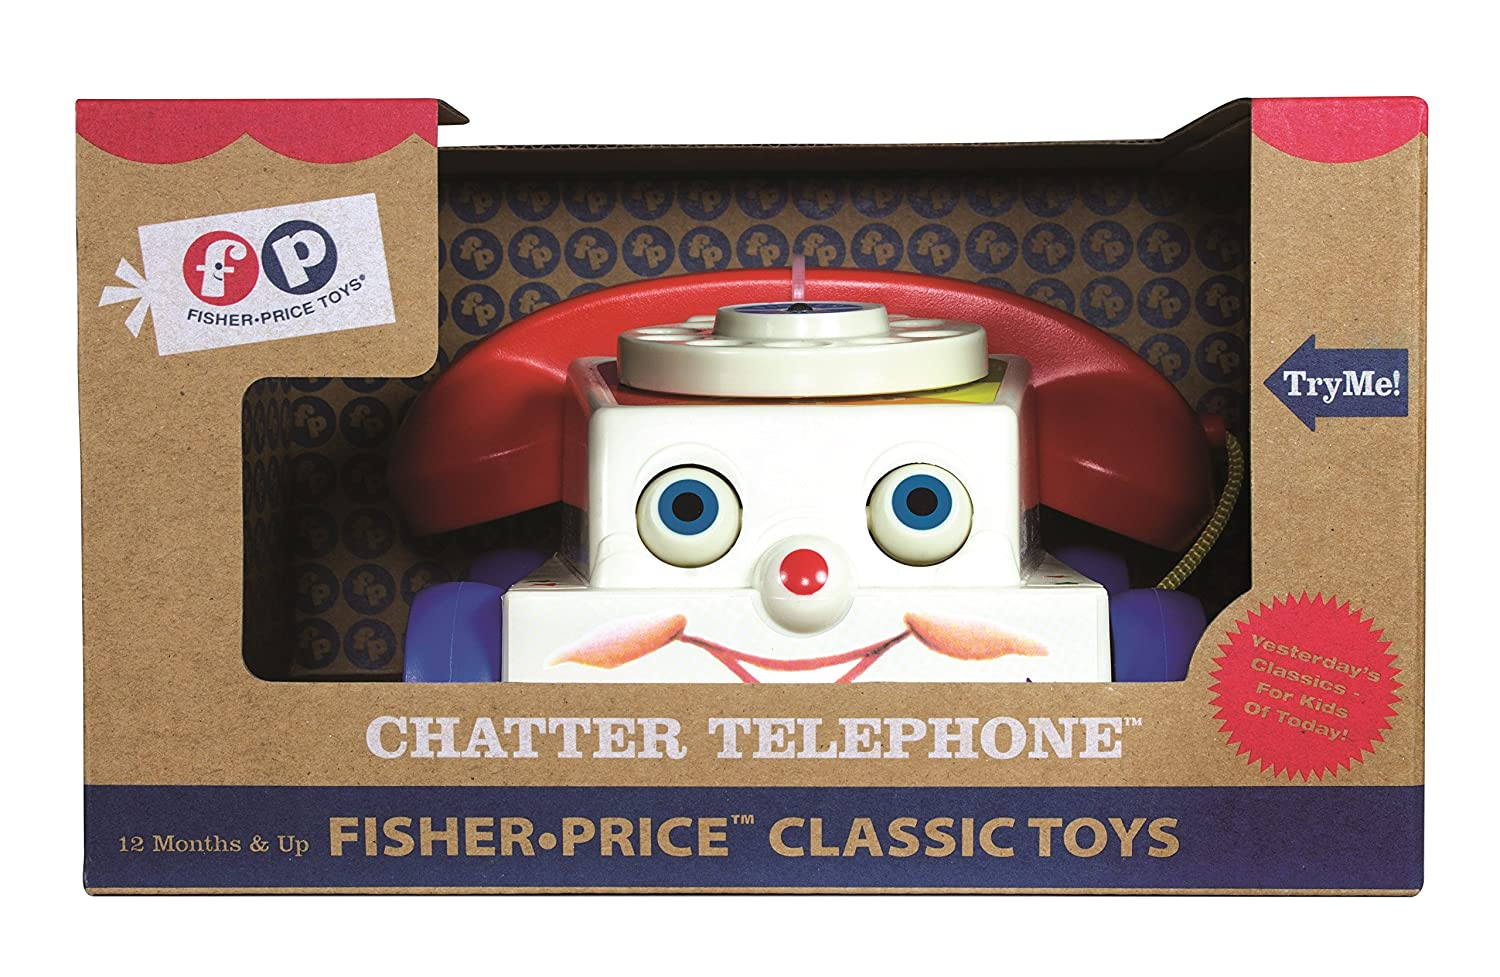 Fisher Price Classics Chatter Telephone: Amazon.co.uk: Toys & Games